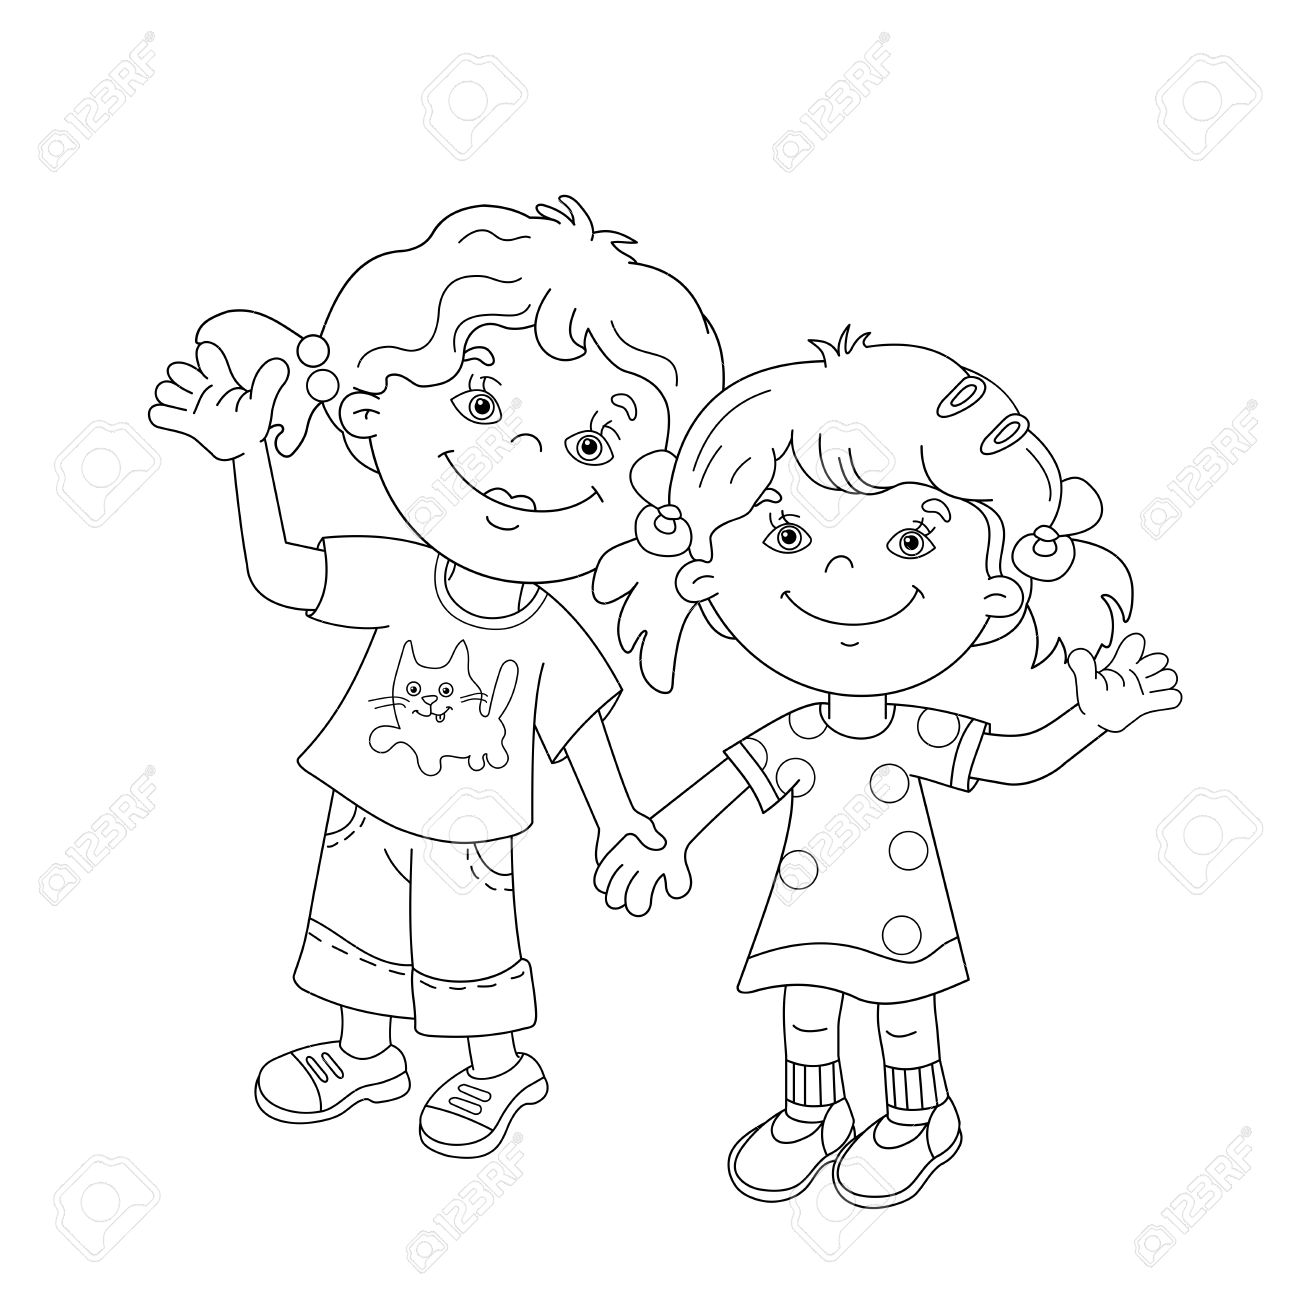 Kids Holding Hands Drawing At Getdrawings